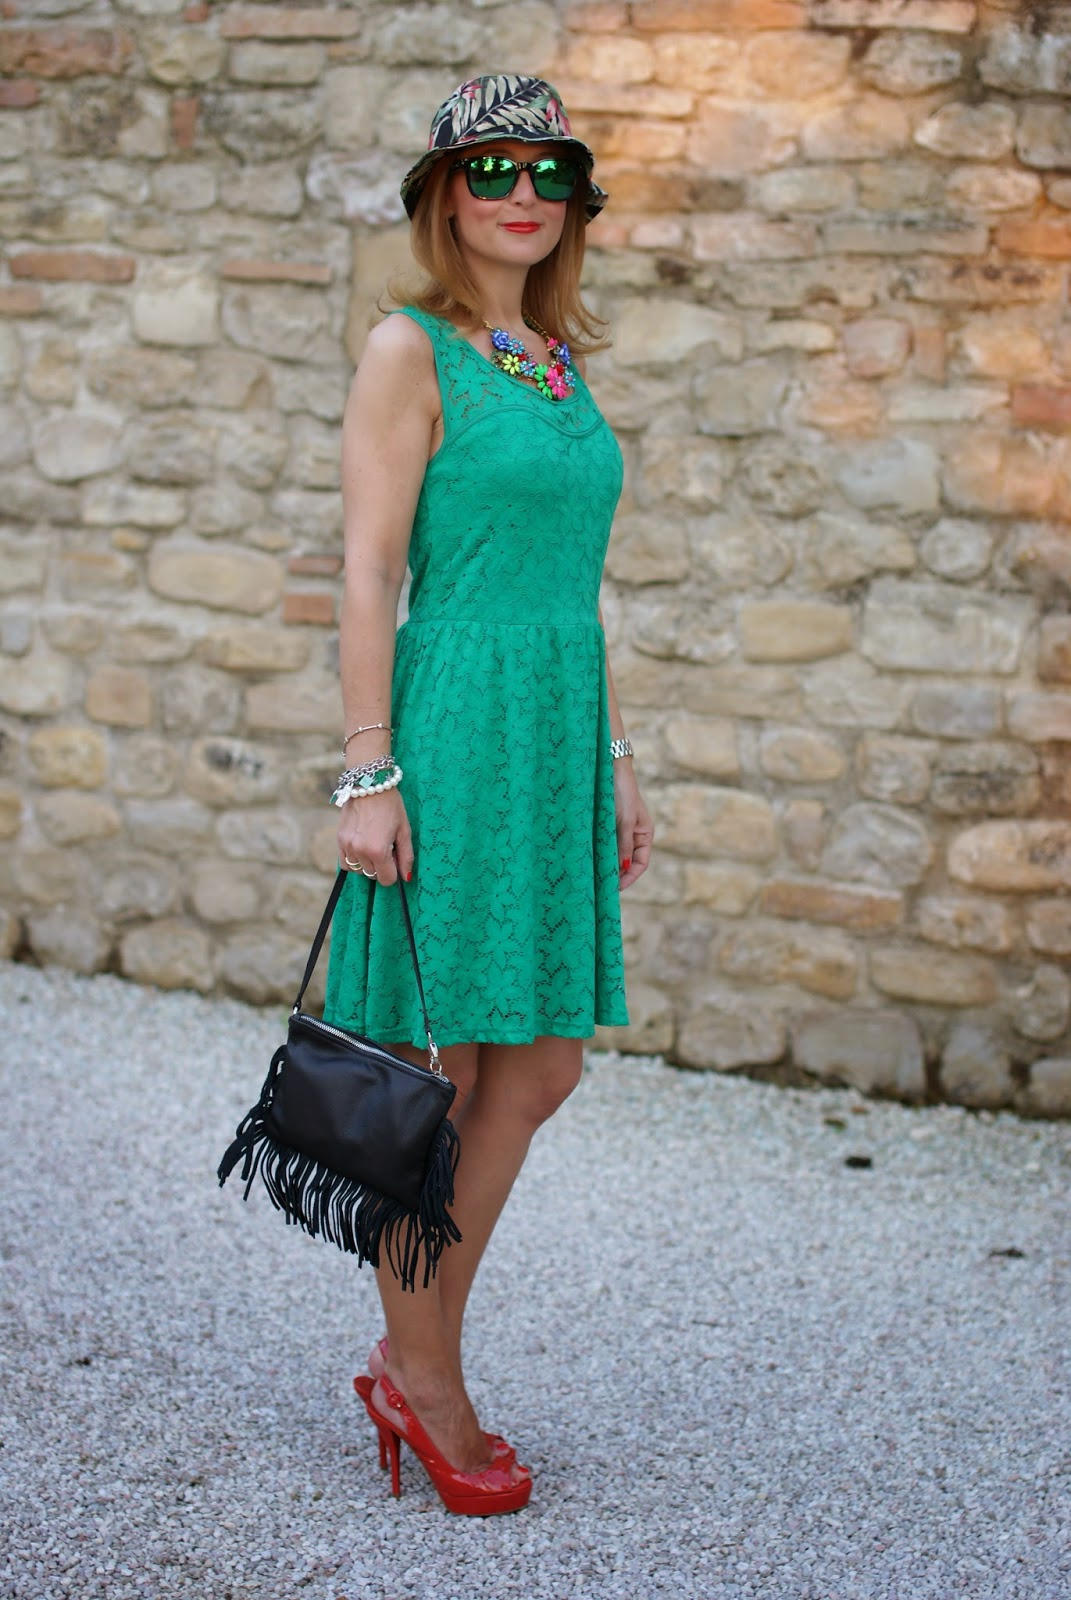 Morgan de toi lace dress, castaner heels, fringed bag, bob hat, oakley green sunglasses, Fashion and Cookies, fashion blogger